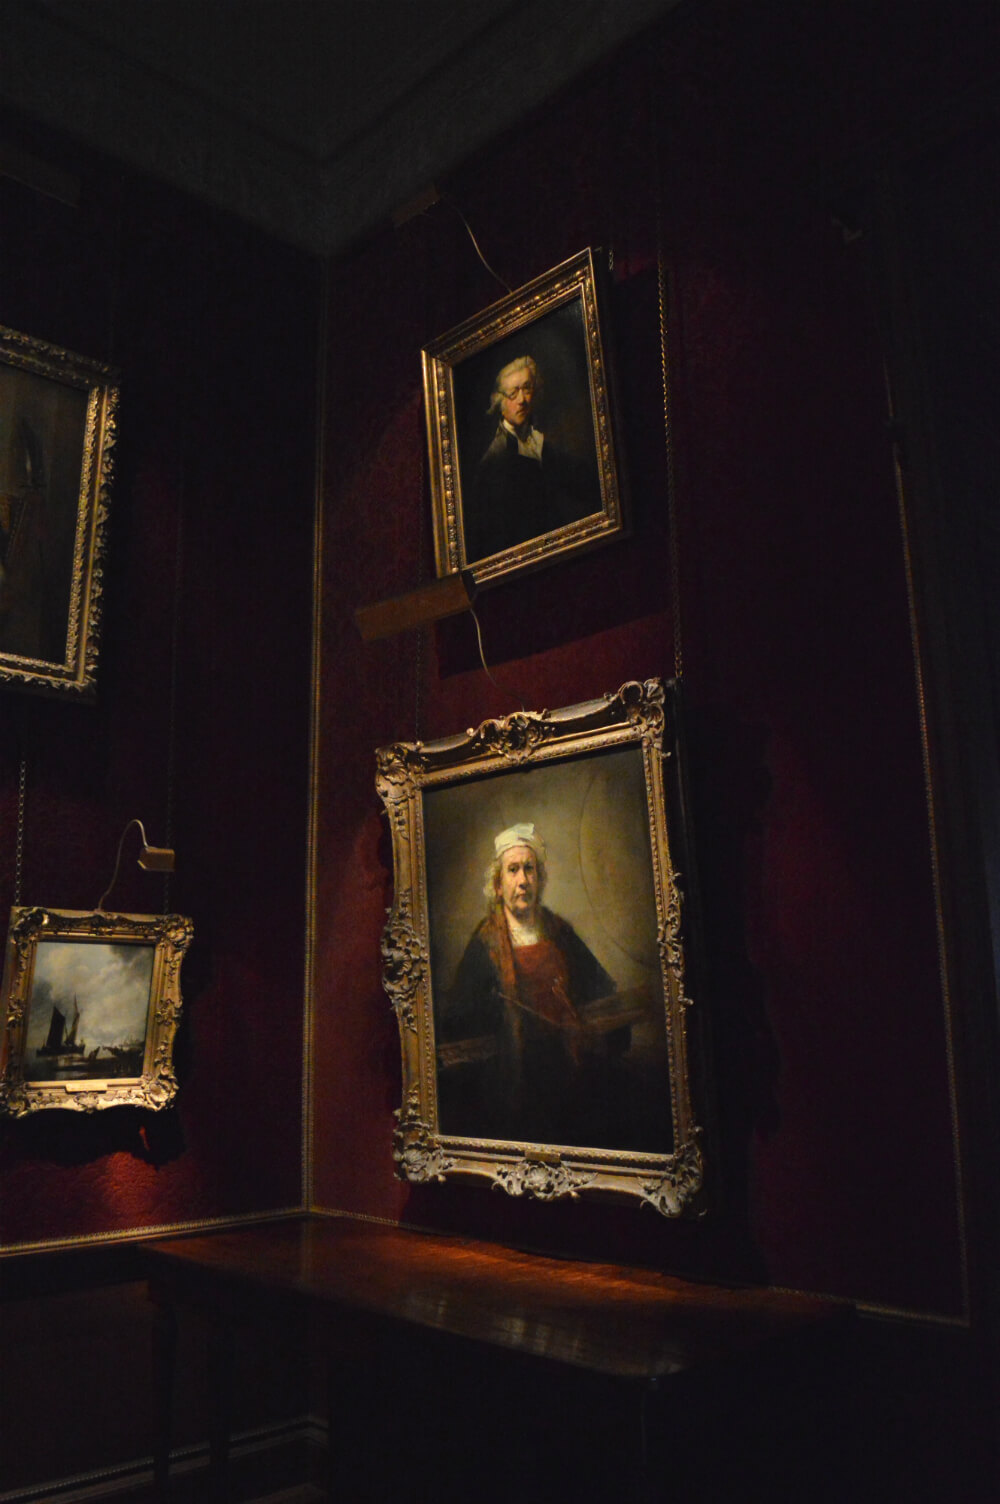 Rembrandt and Reynolds self-portraits at Kenwood House, Hampstead, London